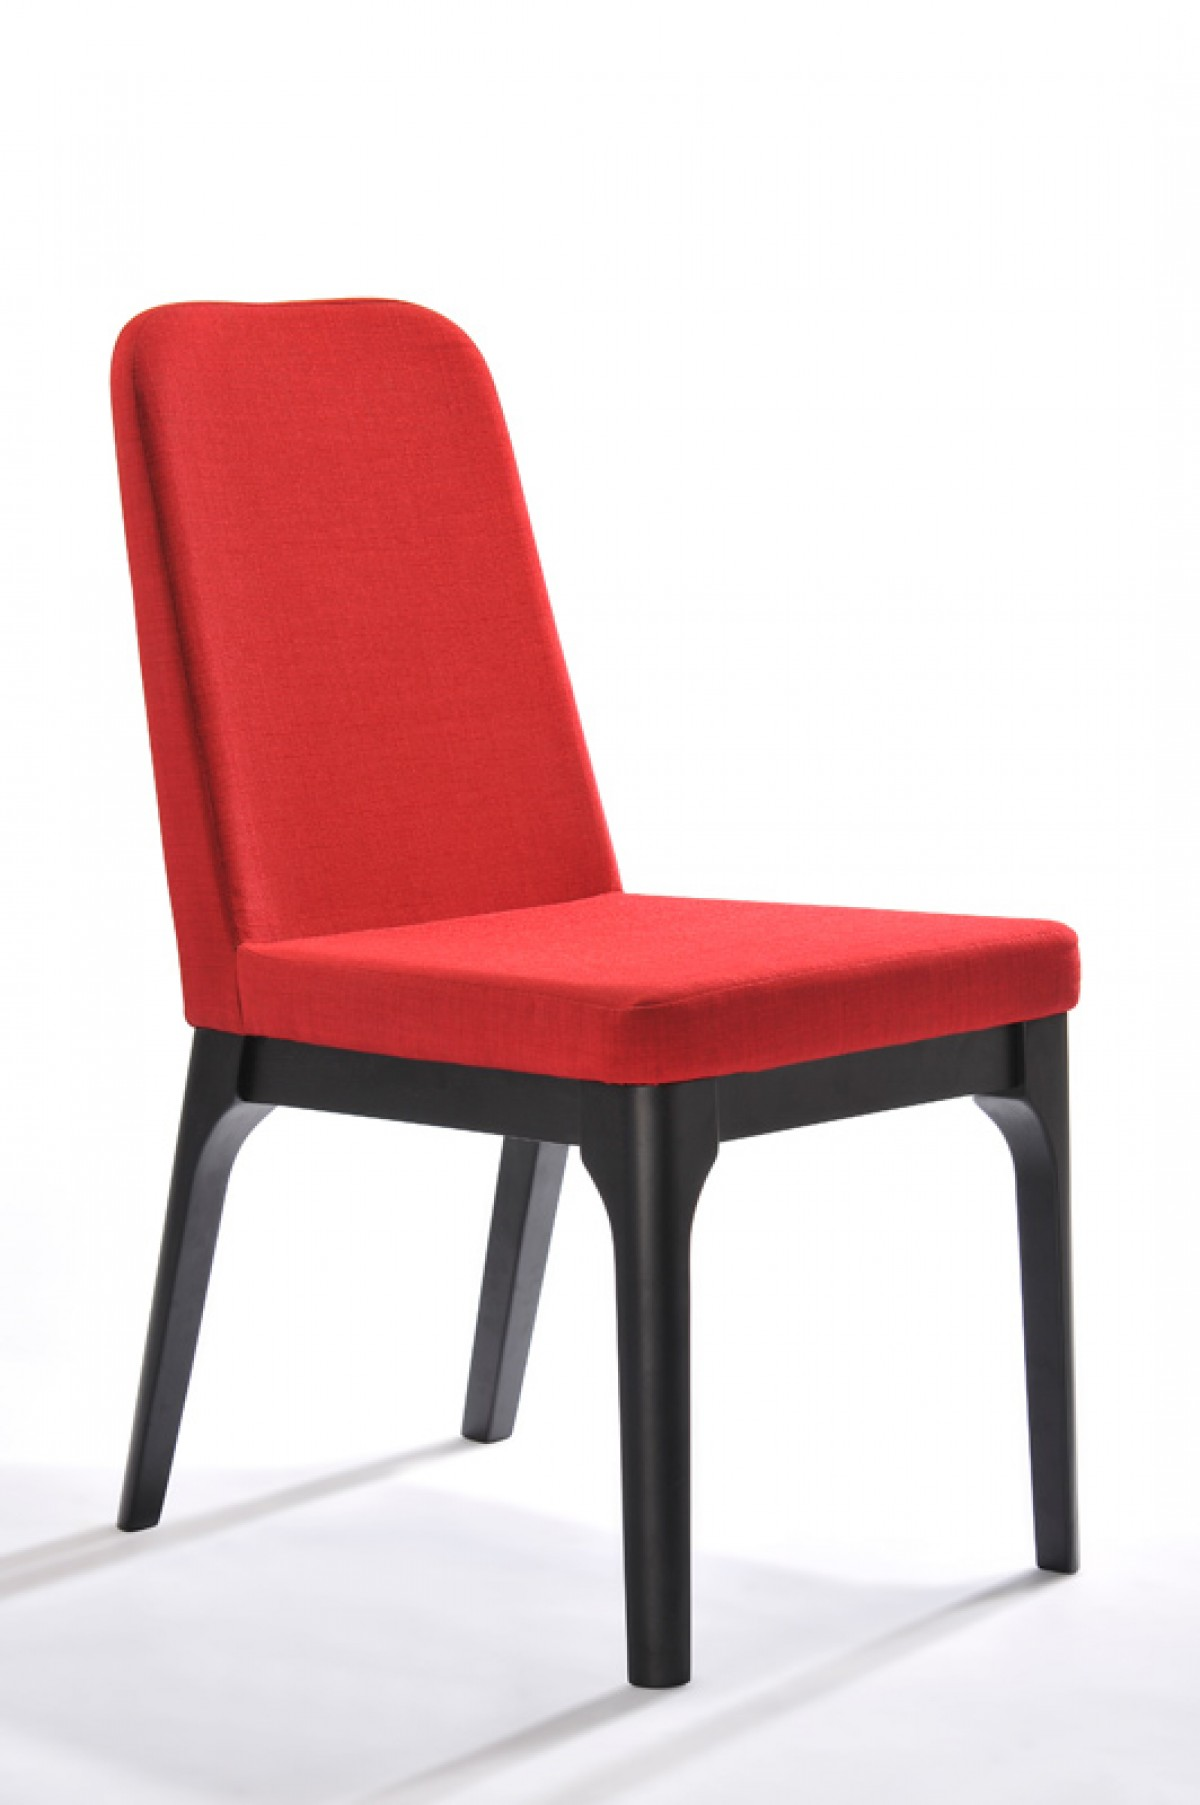 fabric dining chairs desk chair kneeling modrest comet modern red set of 2